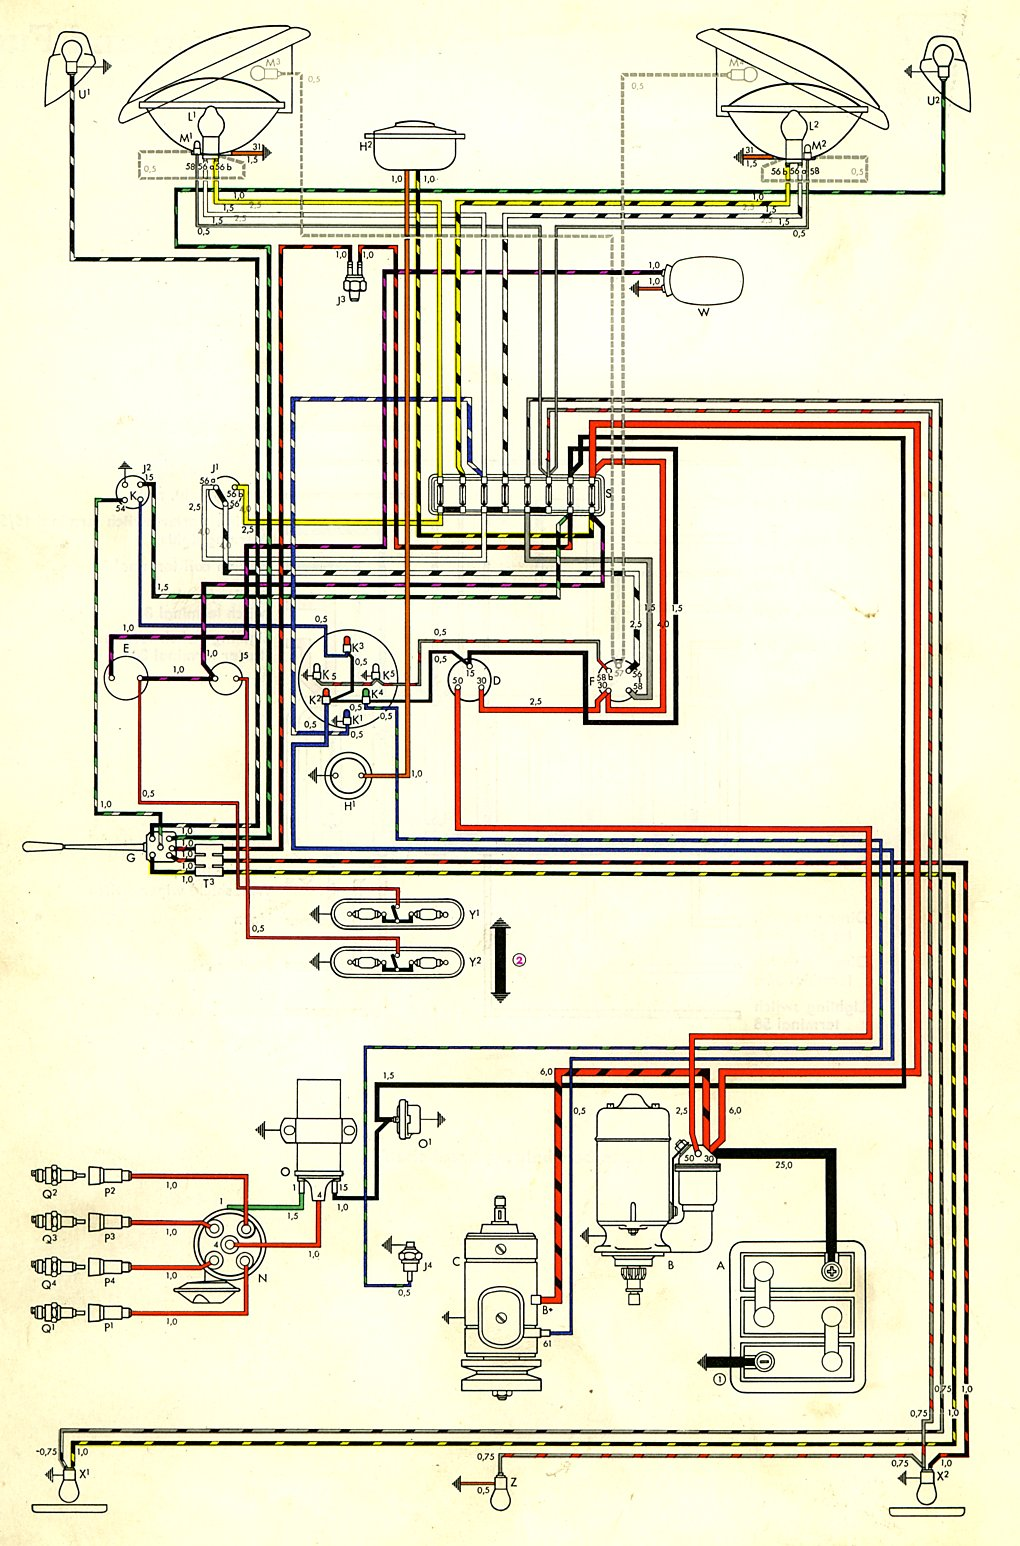 1971 Chevy C20 Wiring Diagram Library Ford 6 0 Fuse 1969 Truck Ignition